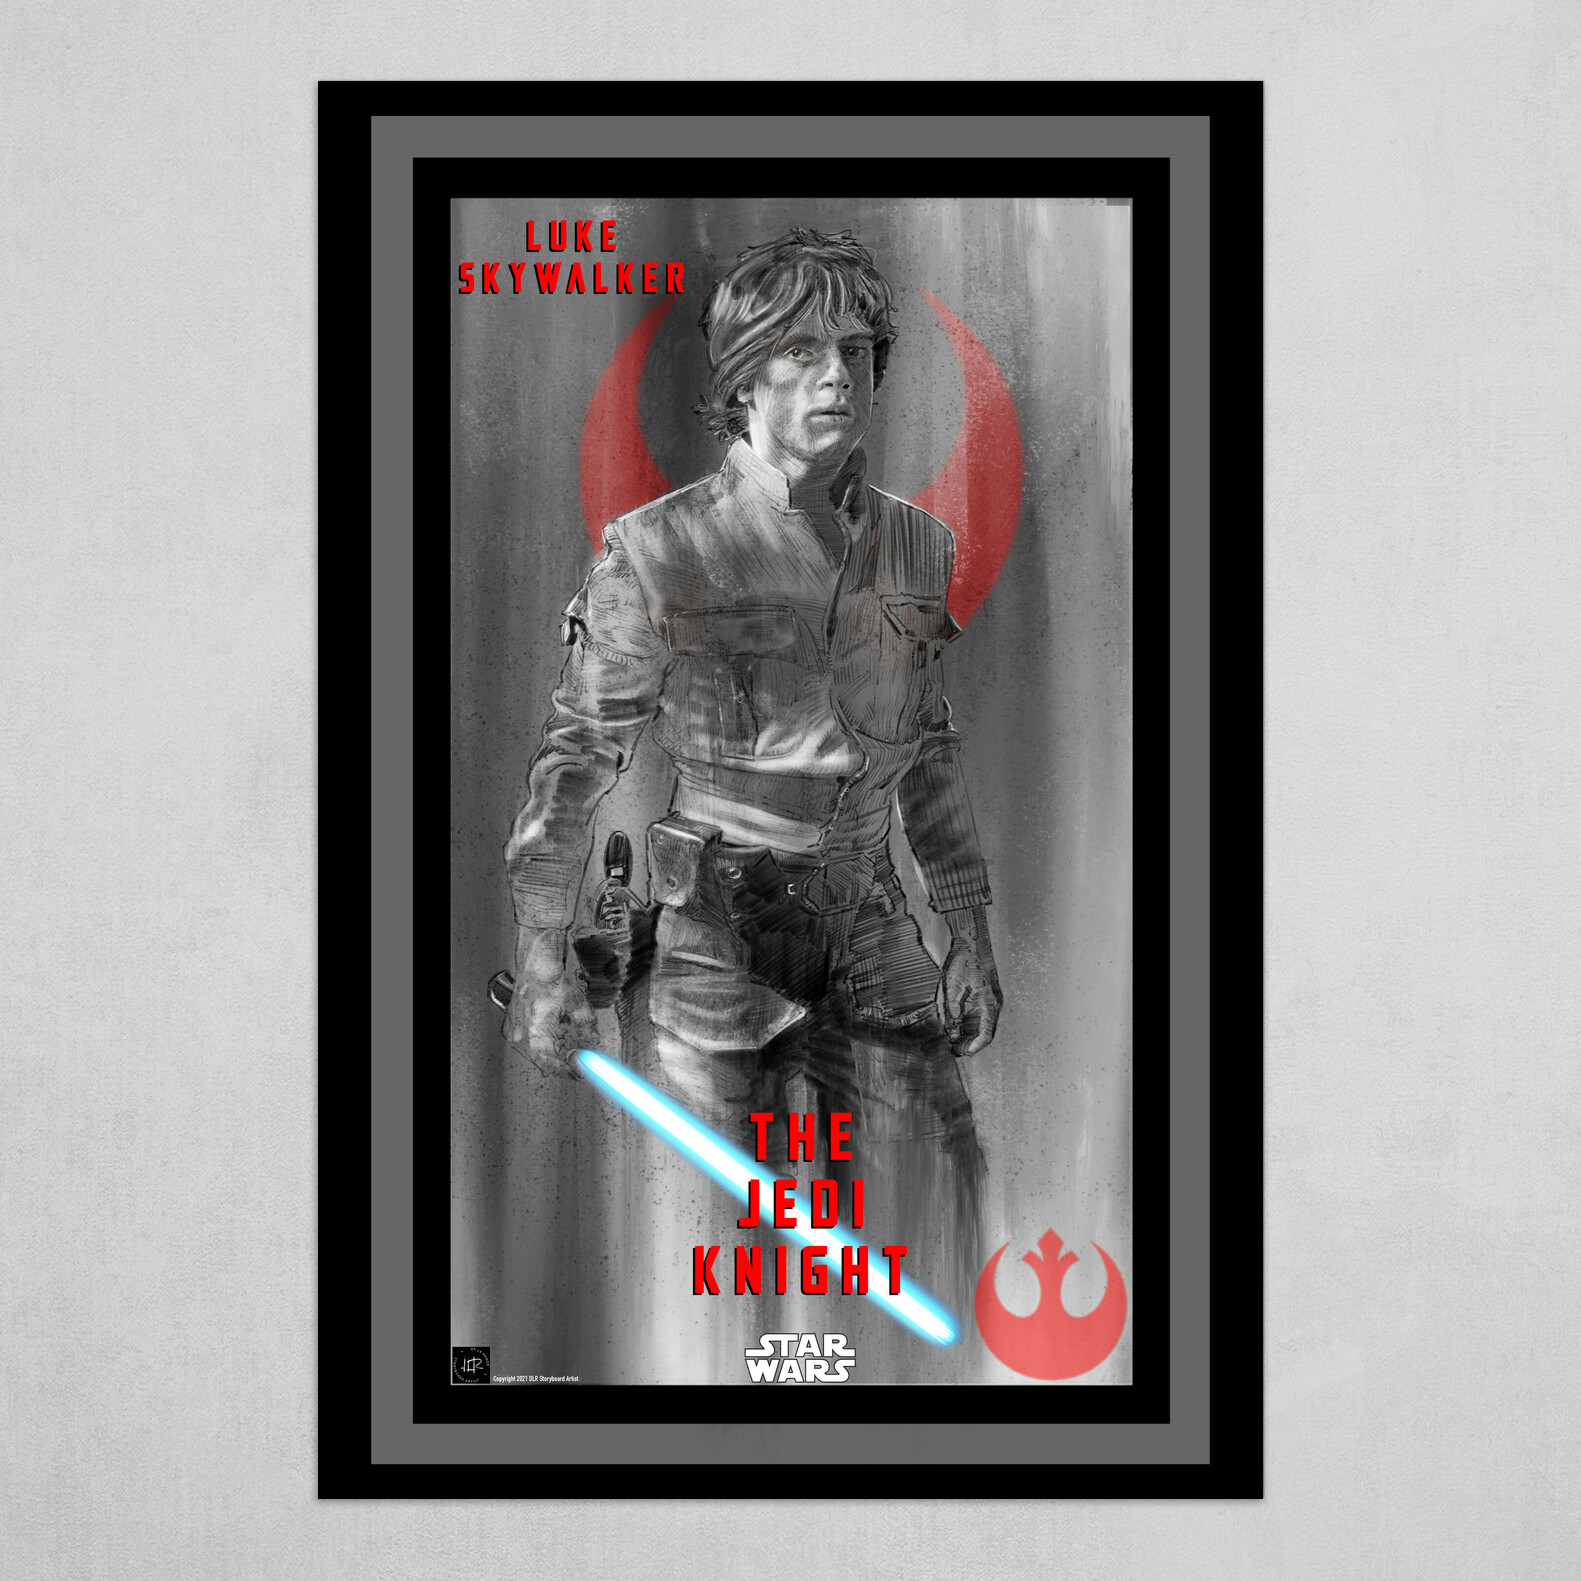 Luke Skywalker-The Jedi Knight Poster in B&W with Blue and Red